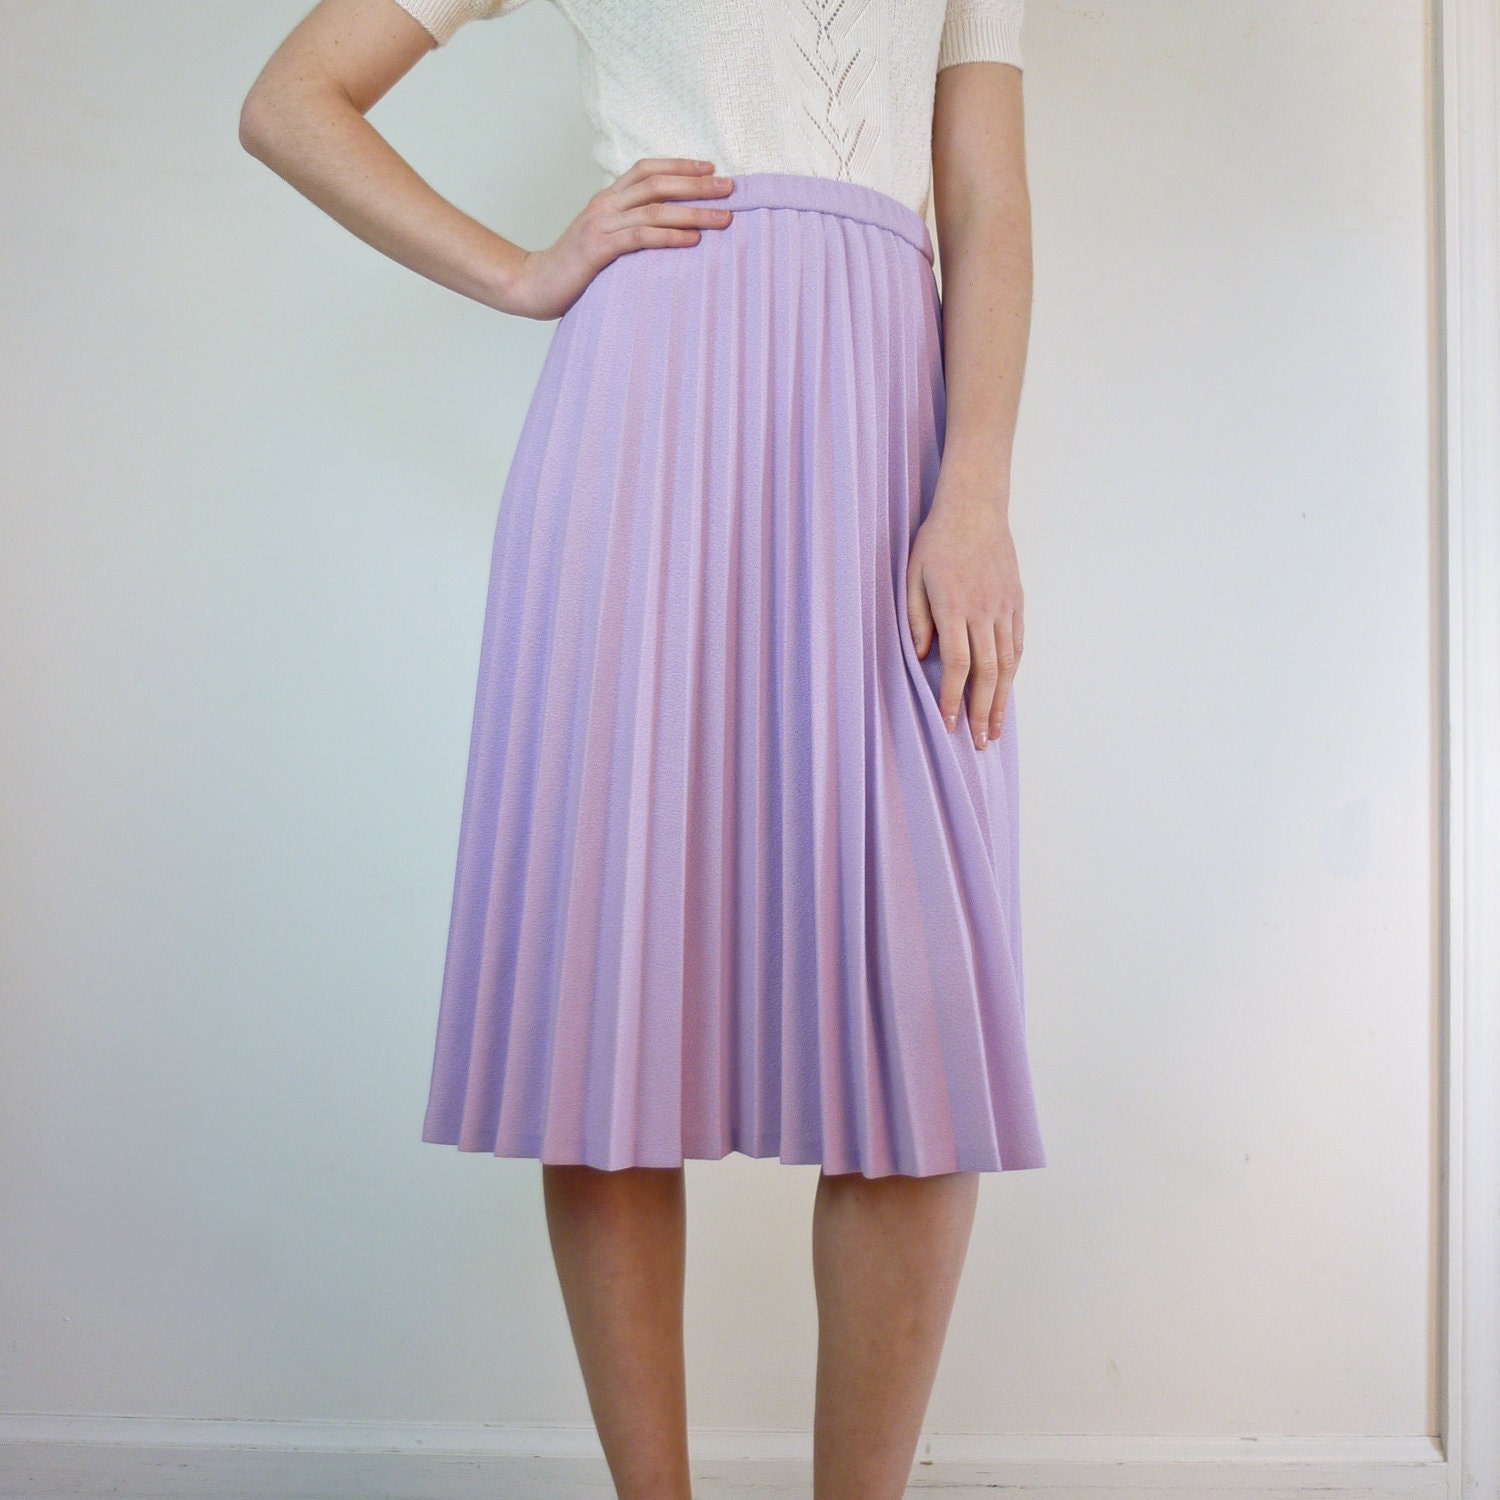 accordion pleated skirt in pale lavender